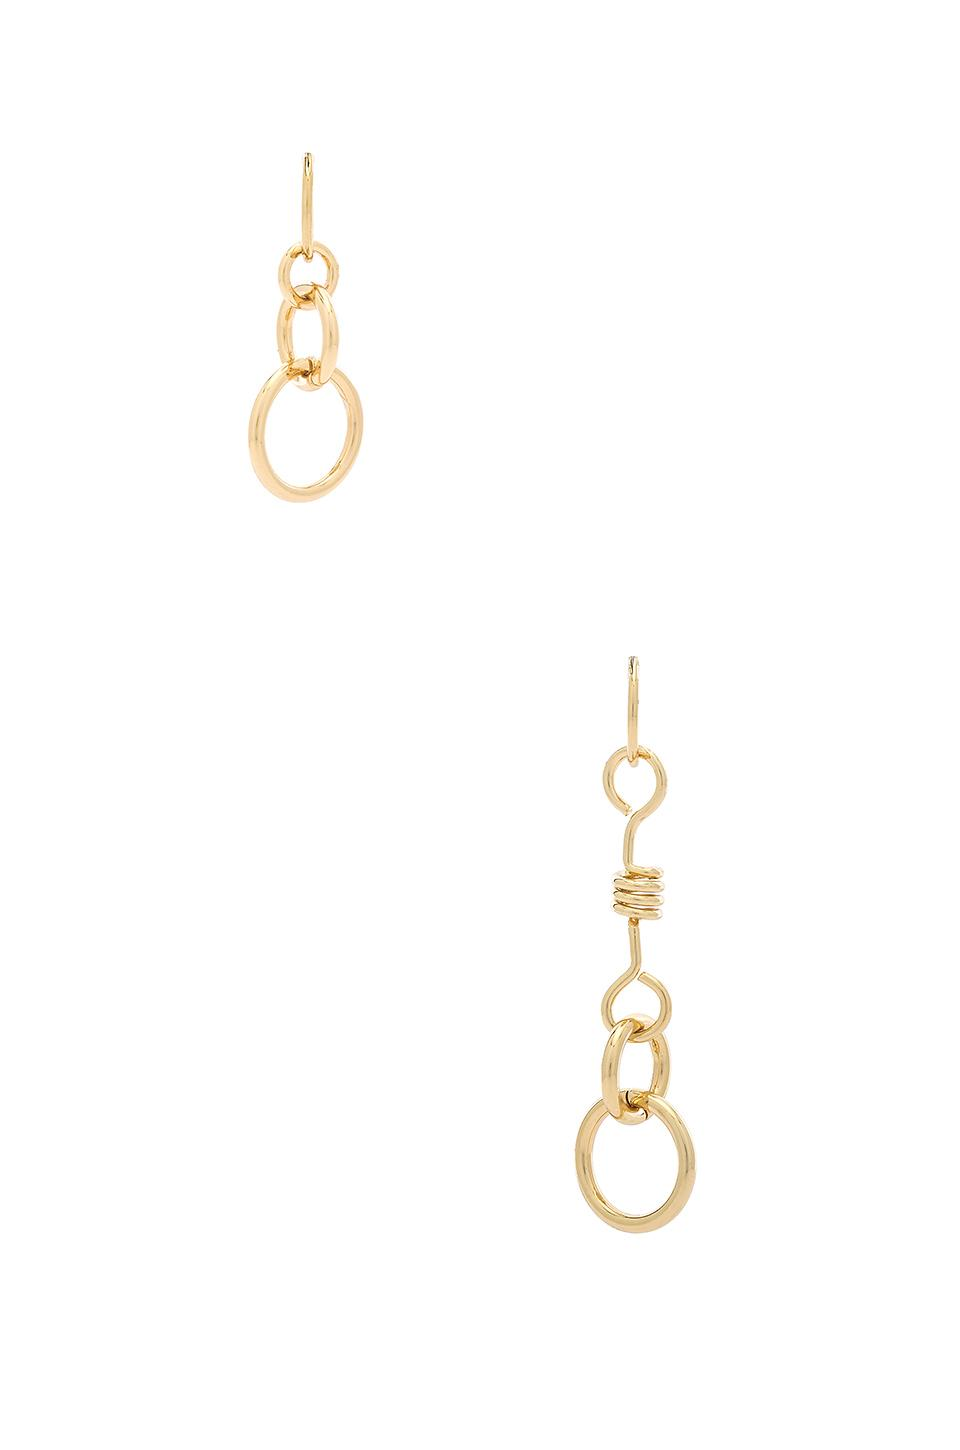 Rebecca Minkoff Mismatched Twisted Links Earrings In Metallic Gold